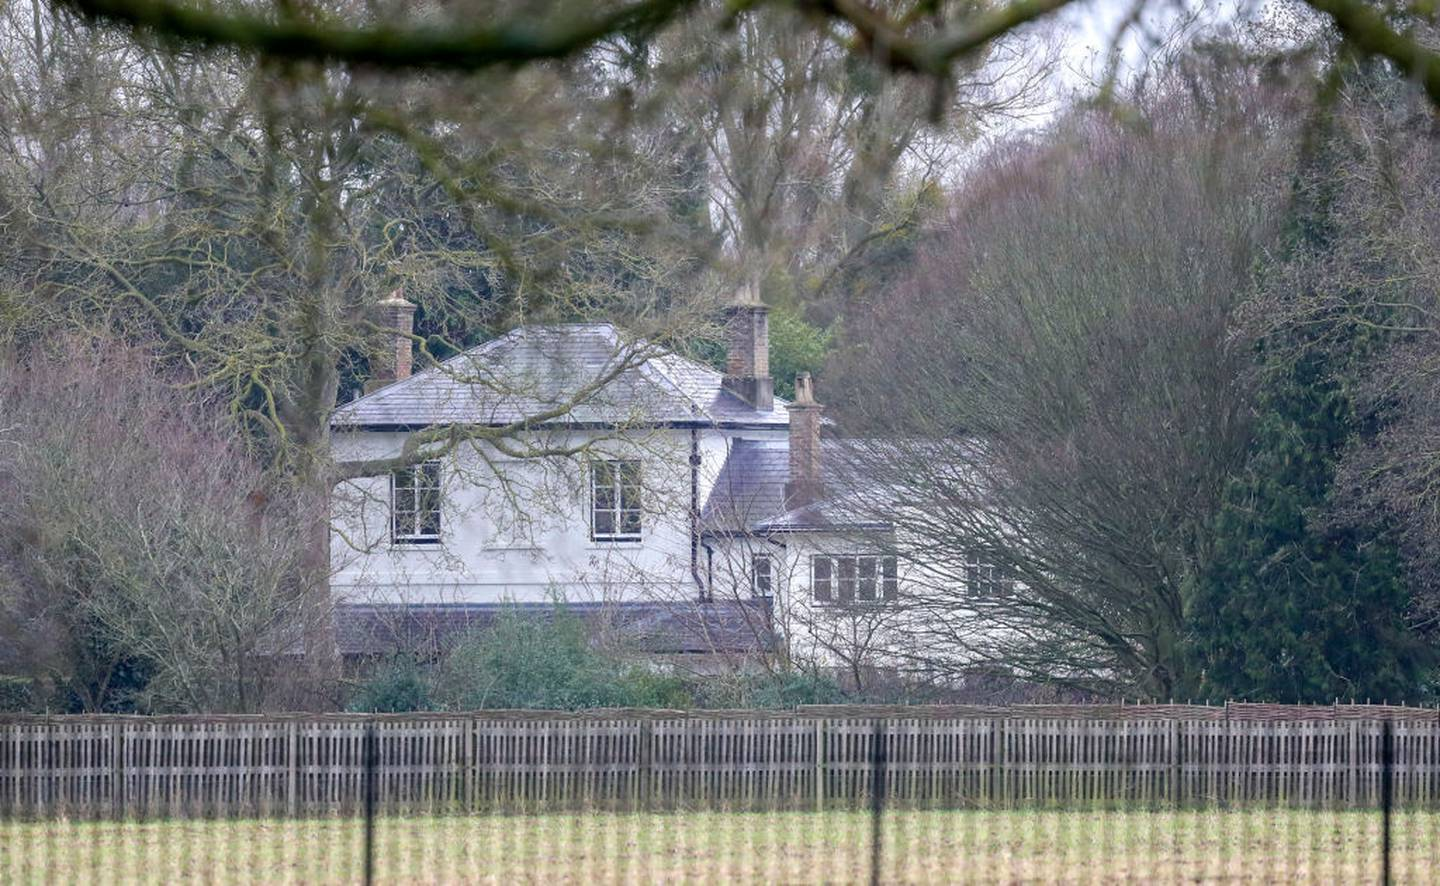 Part of Frogmore Cottage on the Home Park Estate, Windsor. Photo / Getty Images